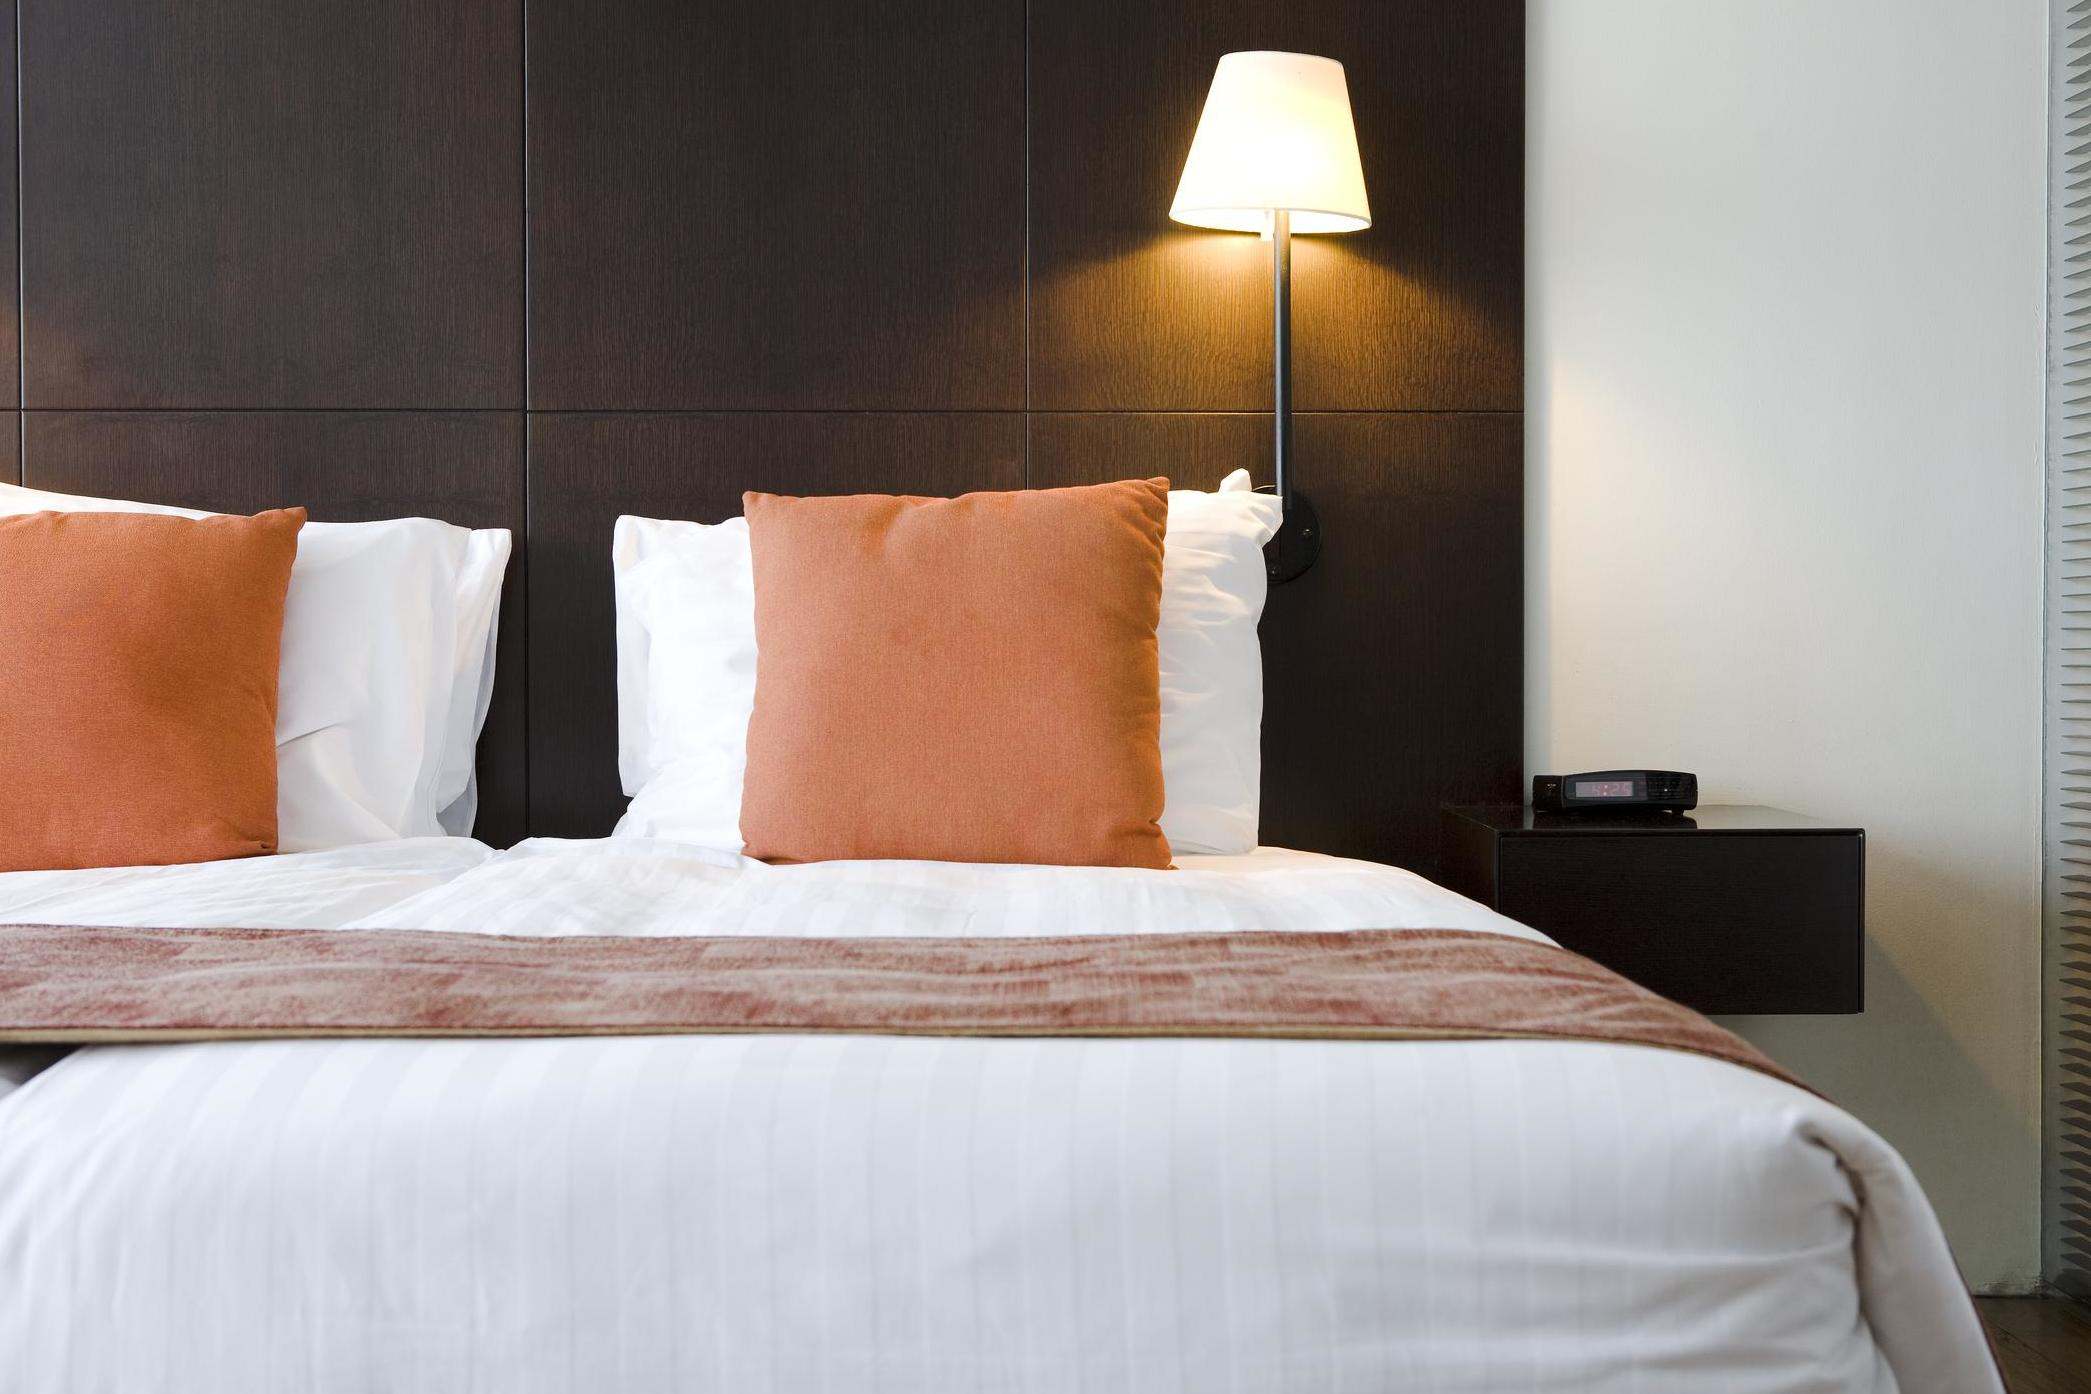 how to tell if your hotel room has bed bugs